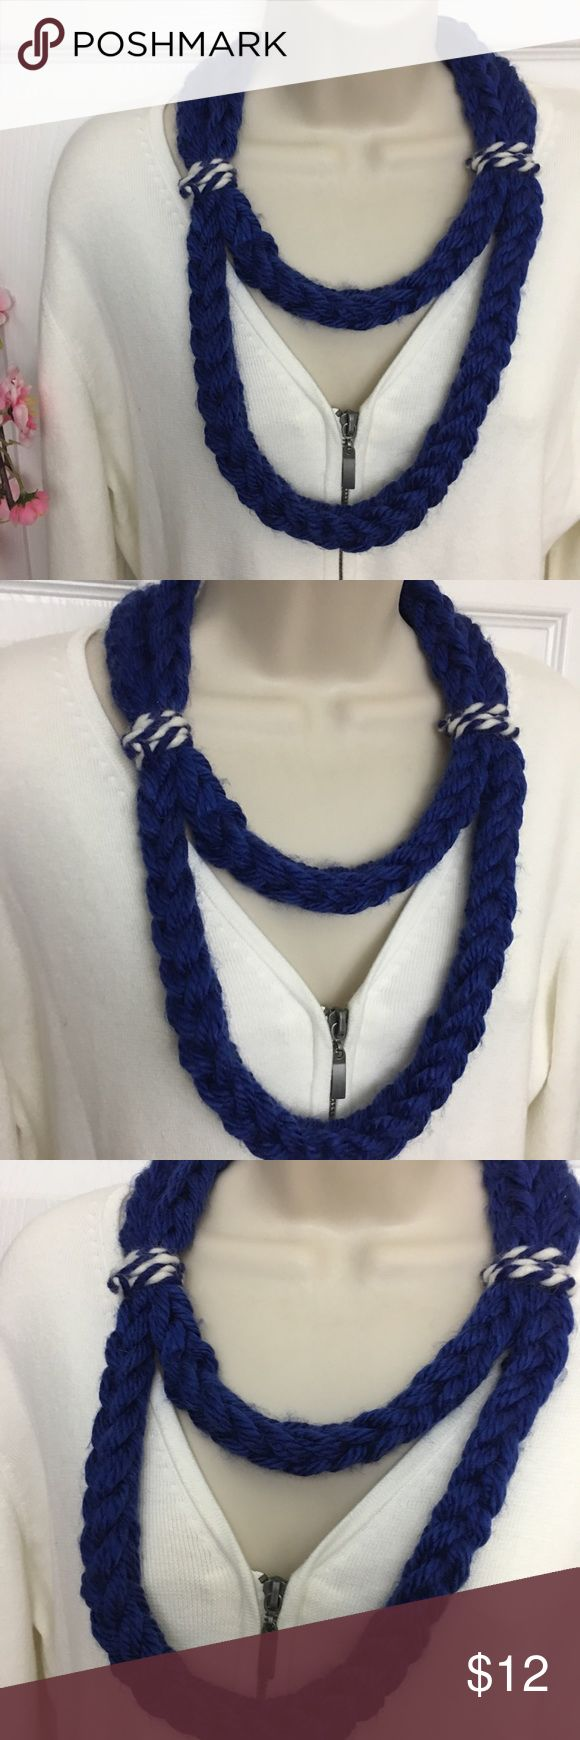 #Buy1Give1 Handmade Finger Knit Royal Blue & White Fun Royal Blue & white two layer knit necklace! Made with acrylic yarn. You just slip it over your head! Comes new with tags.  #BuyOneGiveOne: For every scarf purchased, I make and donate one to Dayton Ohio's St. Vincent Women & Children's Shelter. I will message you a picture of the scarf made from your purchase! T's Creative Corner Jewelry Necklaces